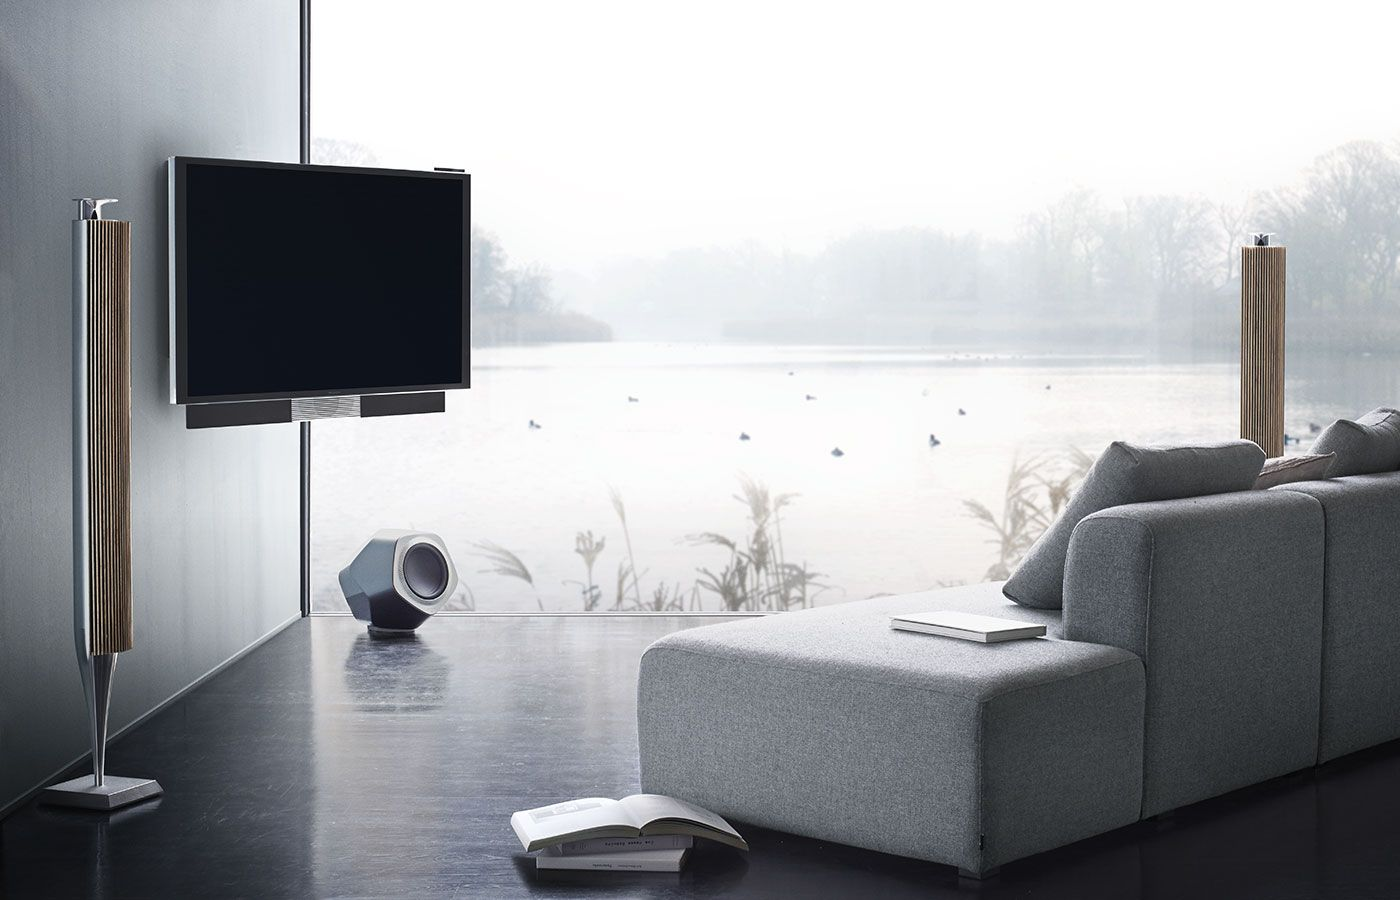 bang and olufsen speakers - Google Search | home idea | Pinterest ...